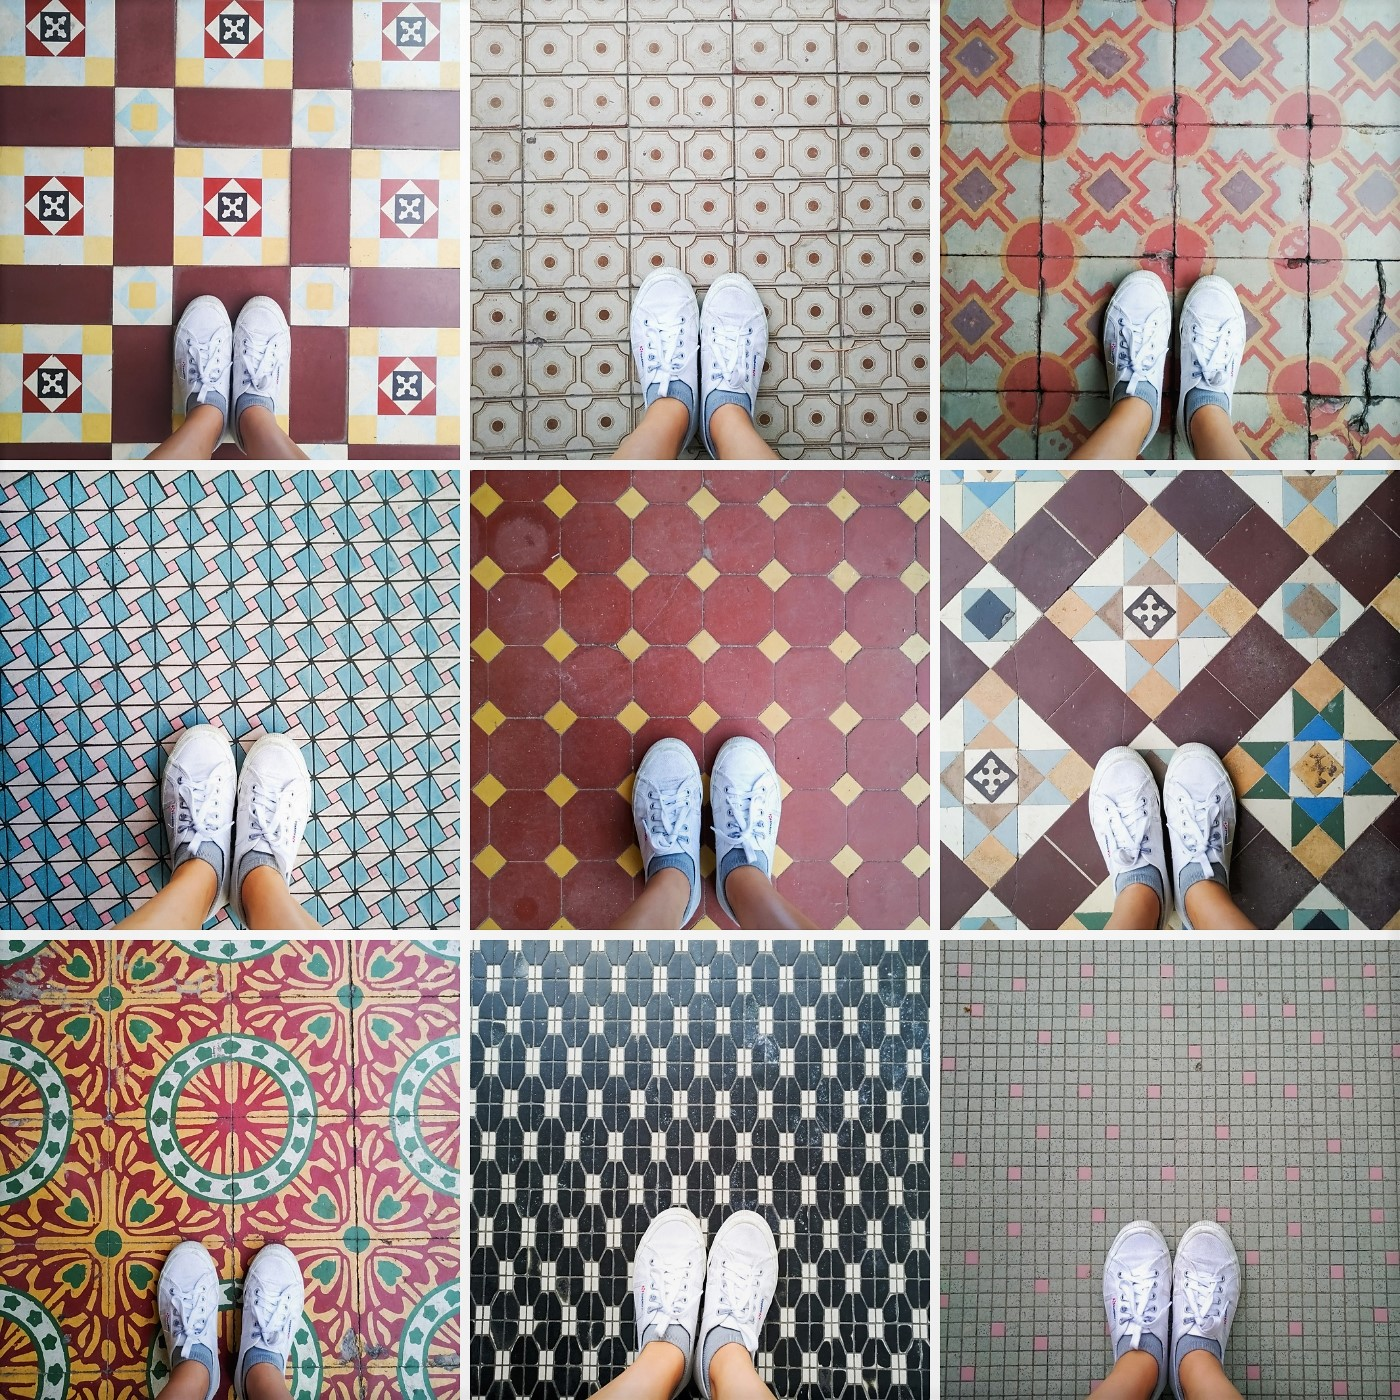 2-an-unconventional-travel-guide-around-penang-tiles.jpg